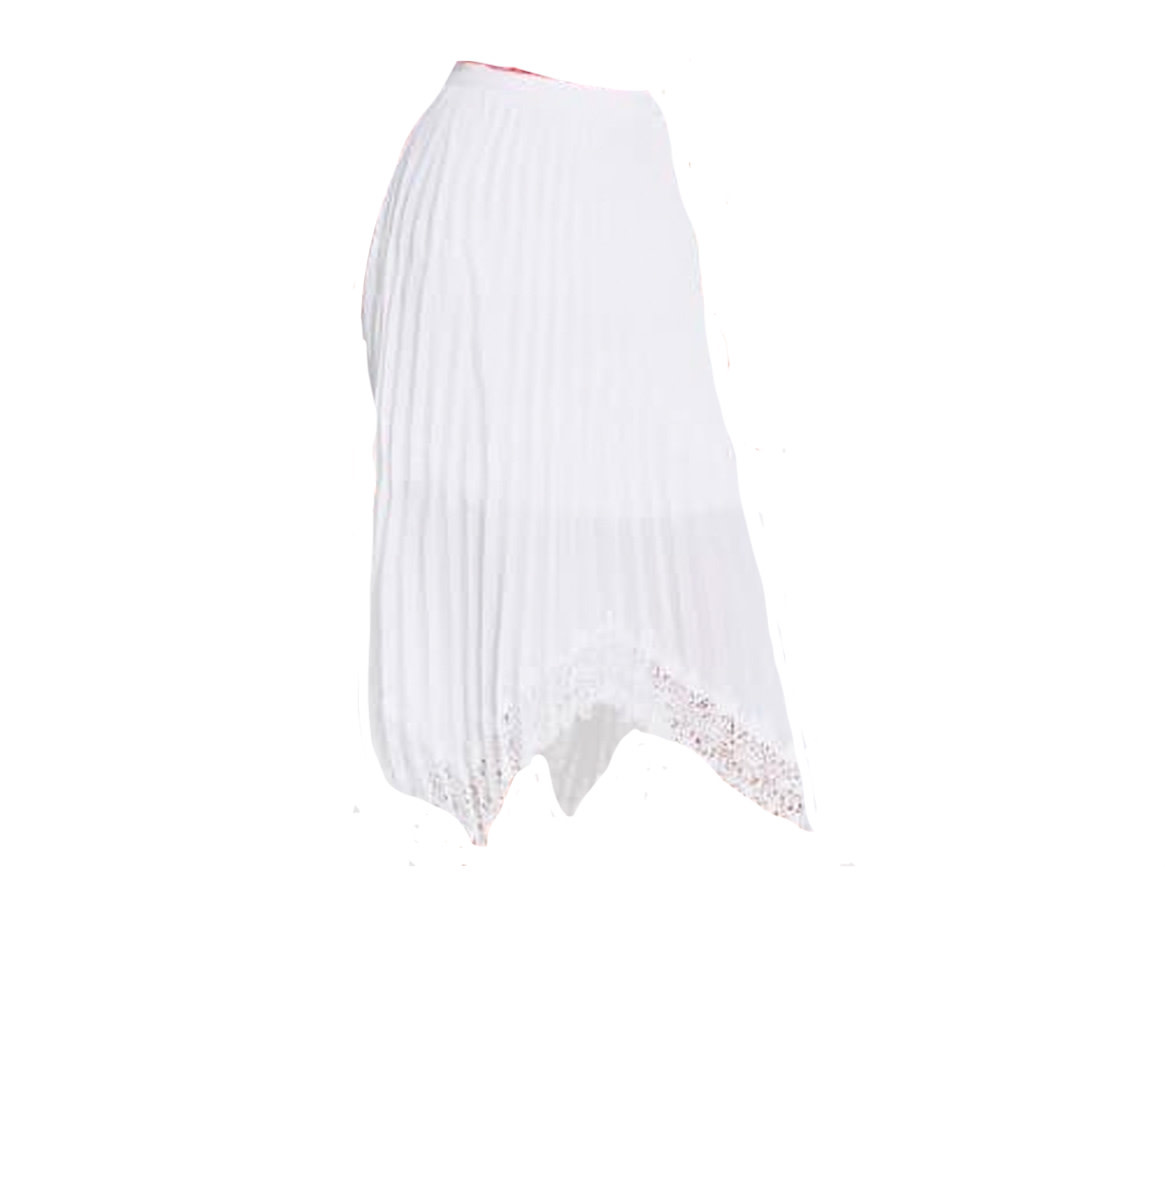 Guess by Marciano Midi skirt Plisse White Guess by Marciano